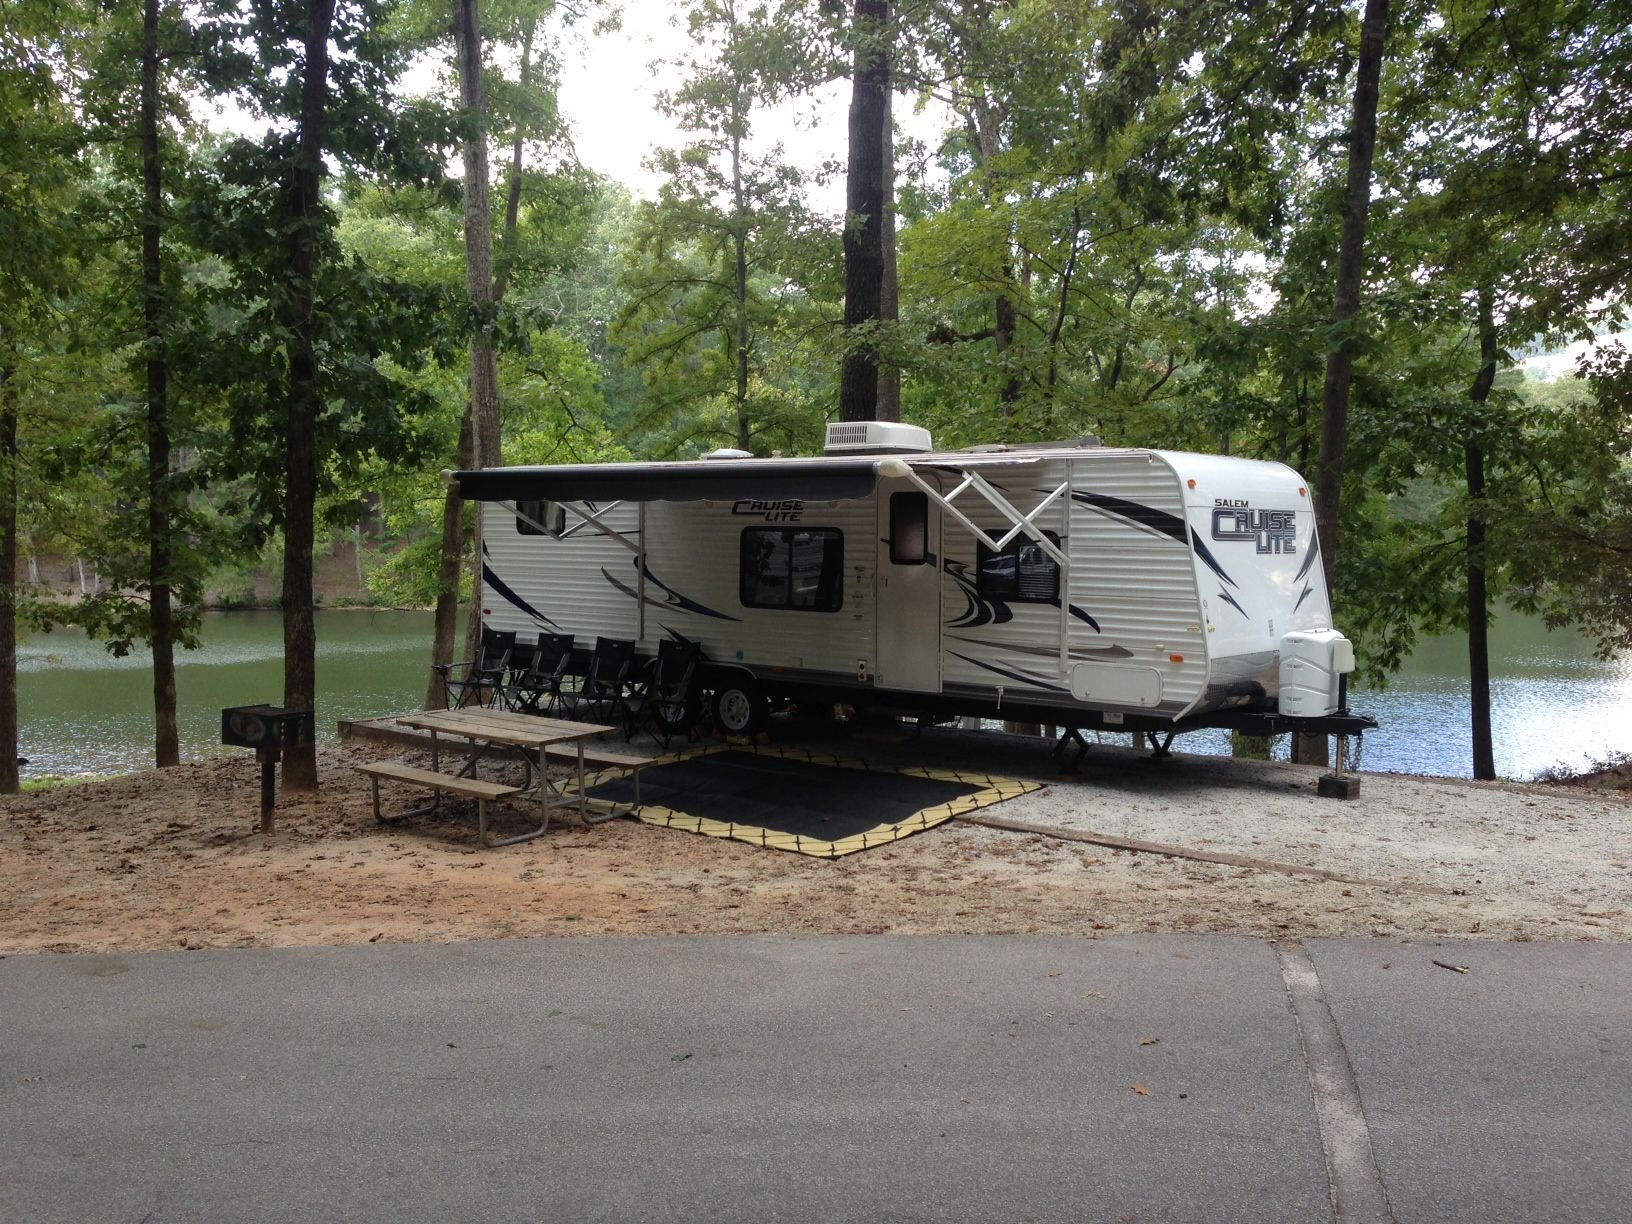 Cruise Lite 28bh On Campsite 333 On Trail M At Stone Mountain Park